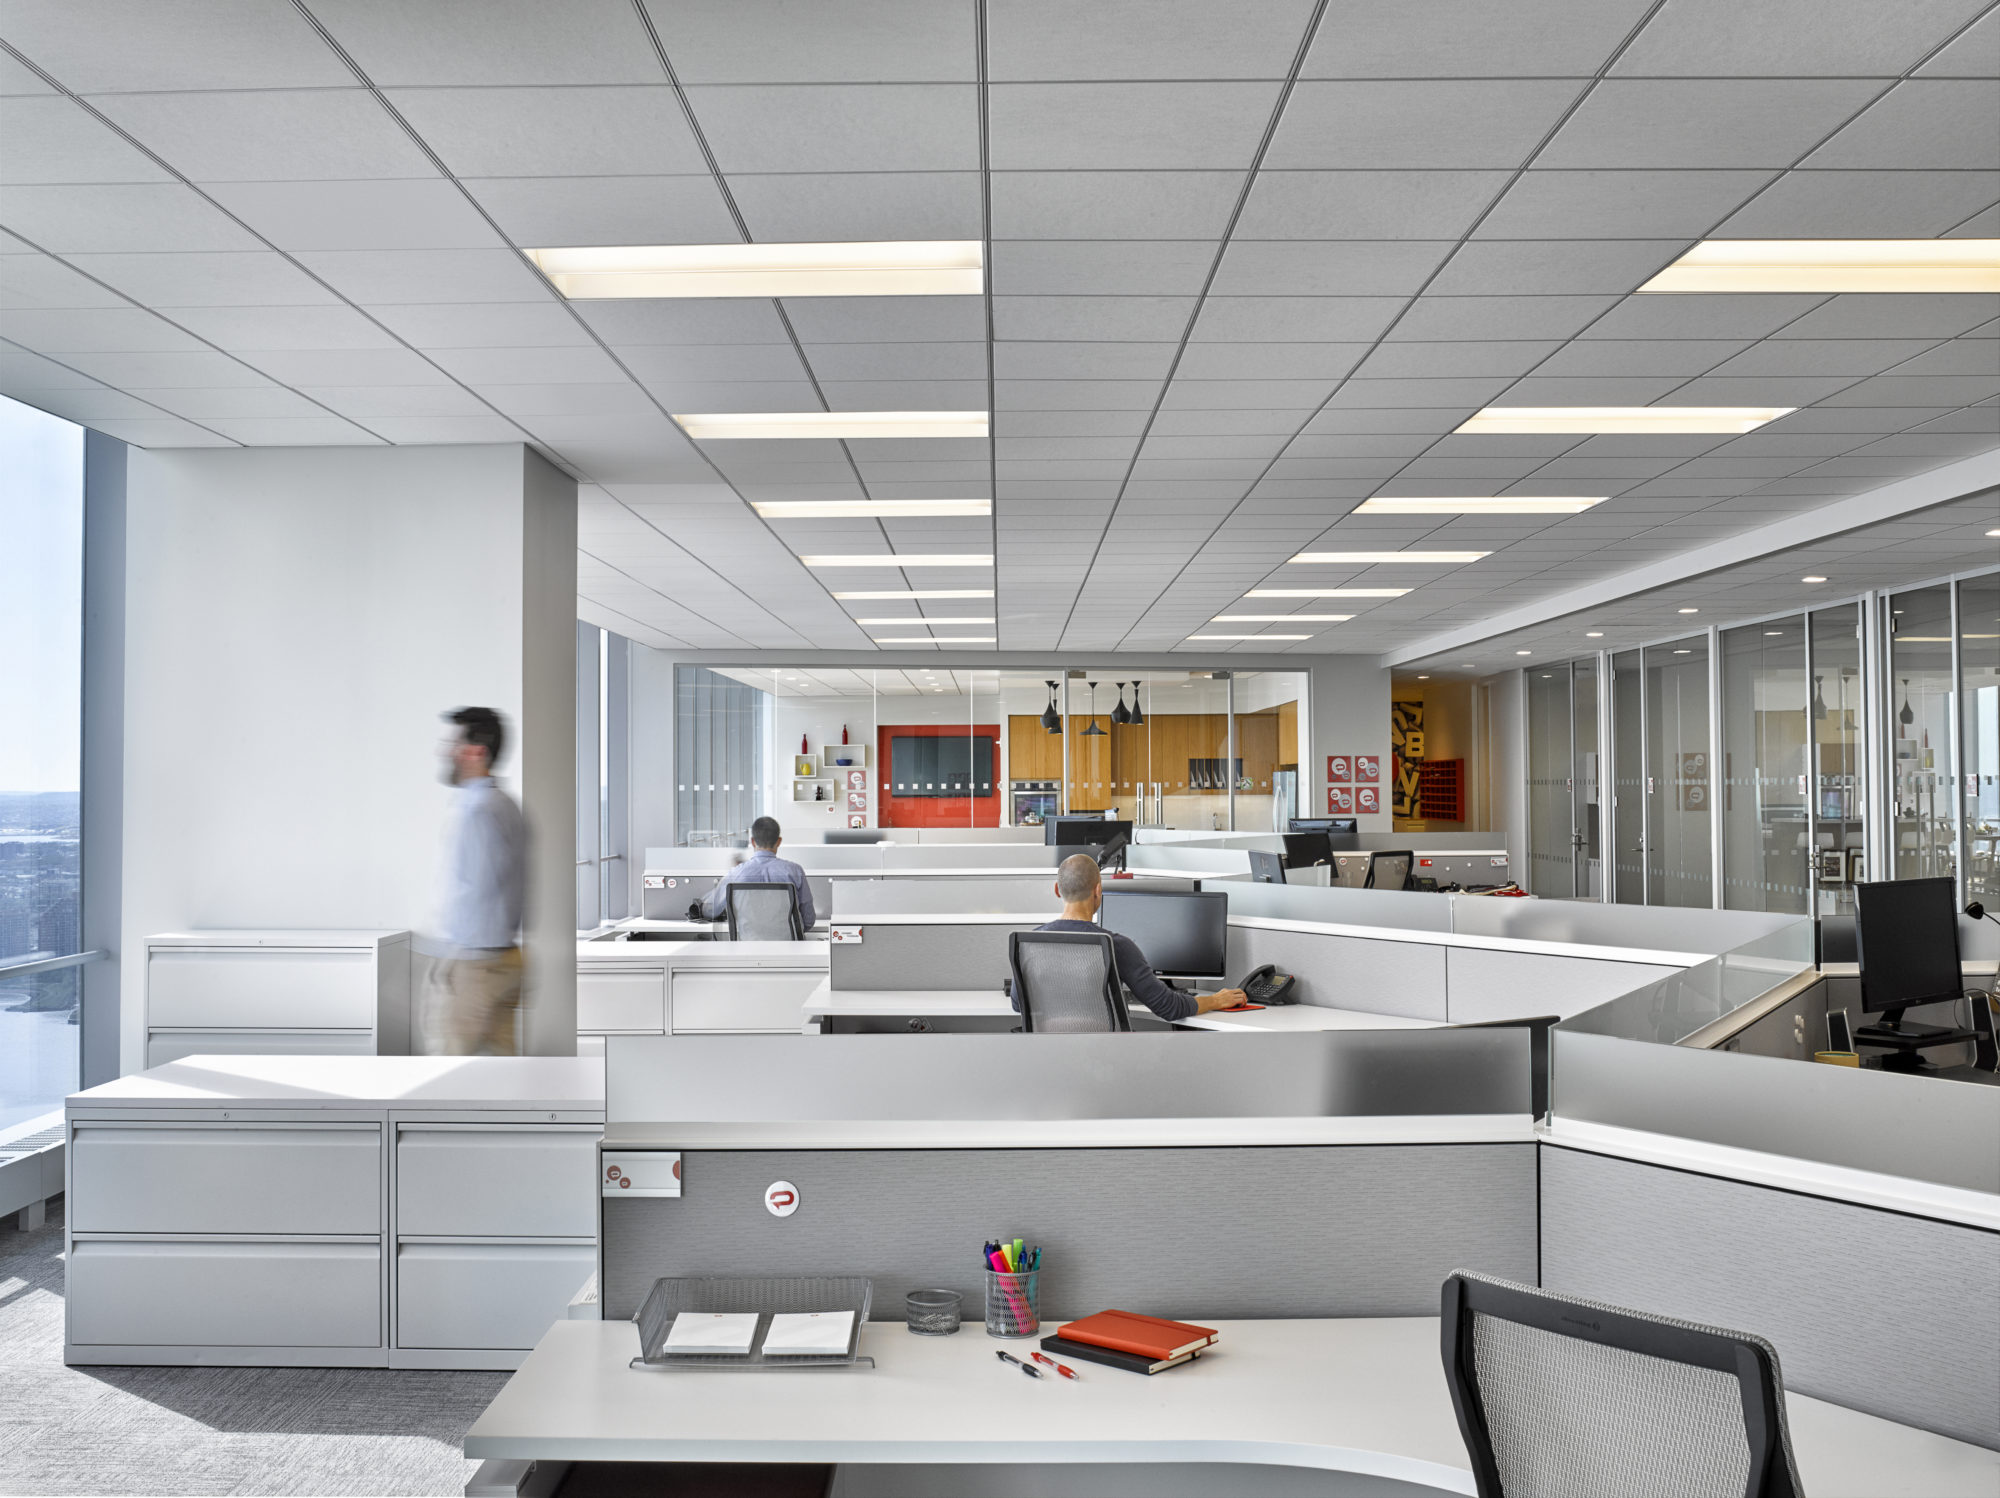 Man looking out the window as people work at their desks in the offices of Padilla CRT in New York. MEP designed by 2L Engineering.